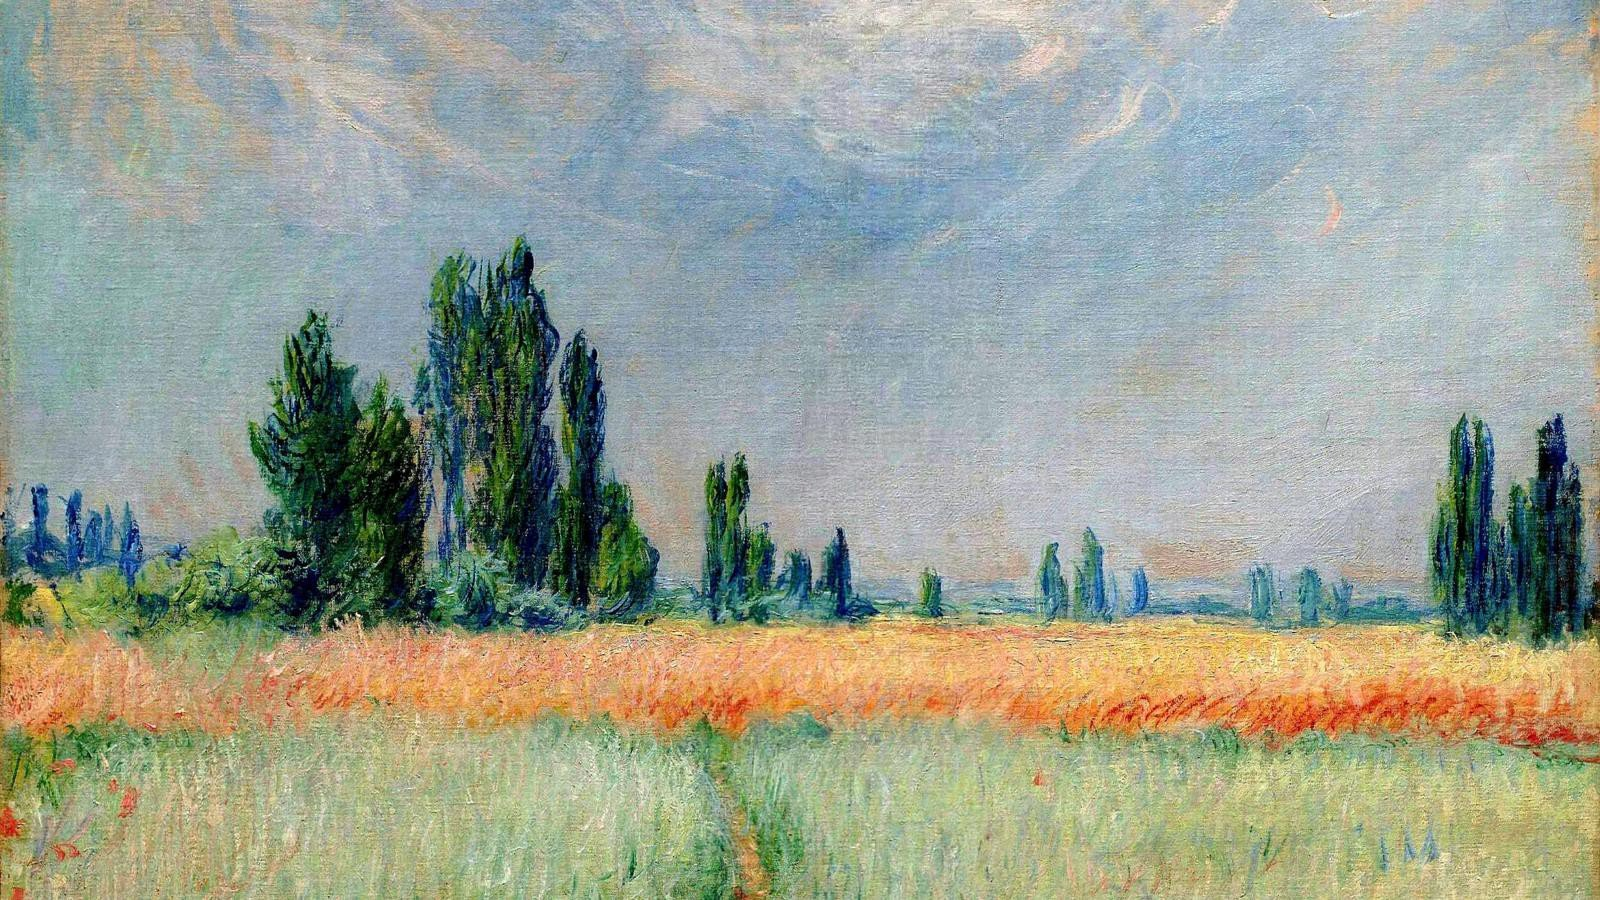 Monet Images Of Paintings Best Of 6 Amazing Things You Didn't Know About Claude Monet